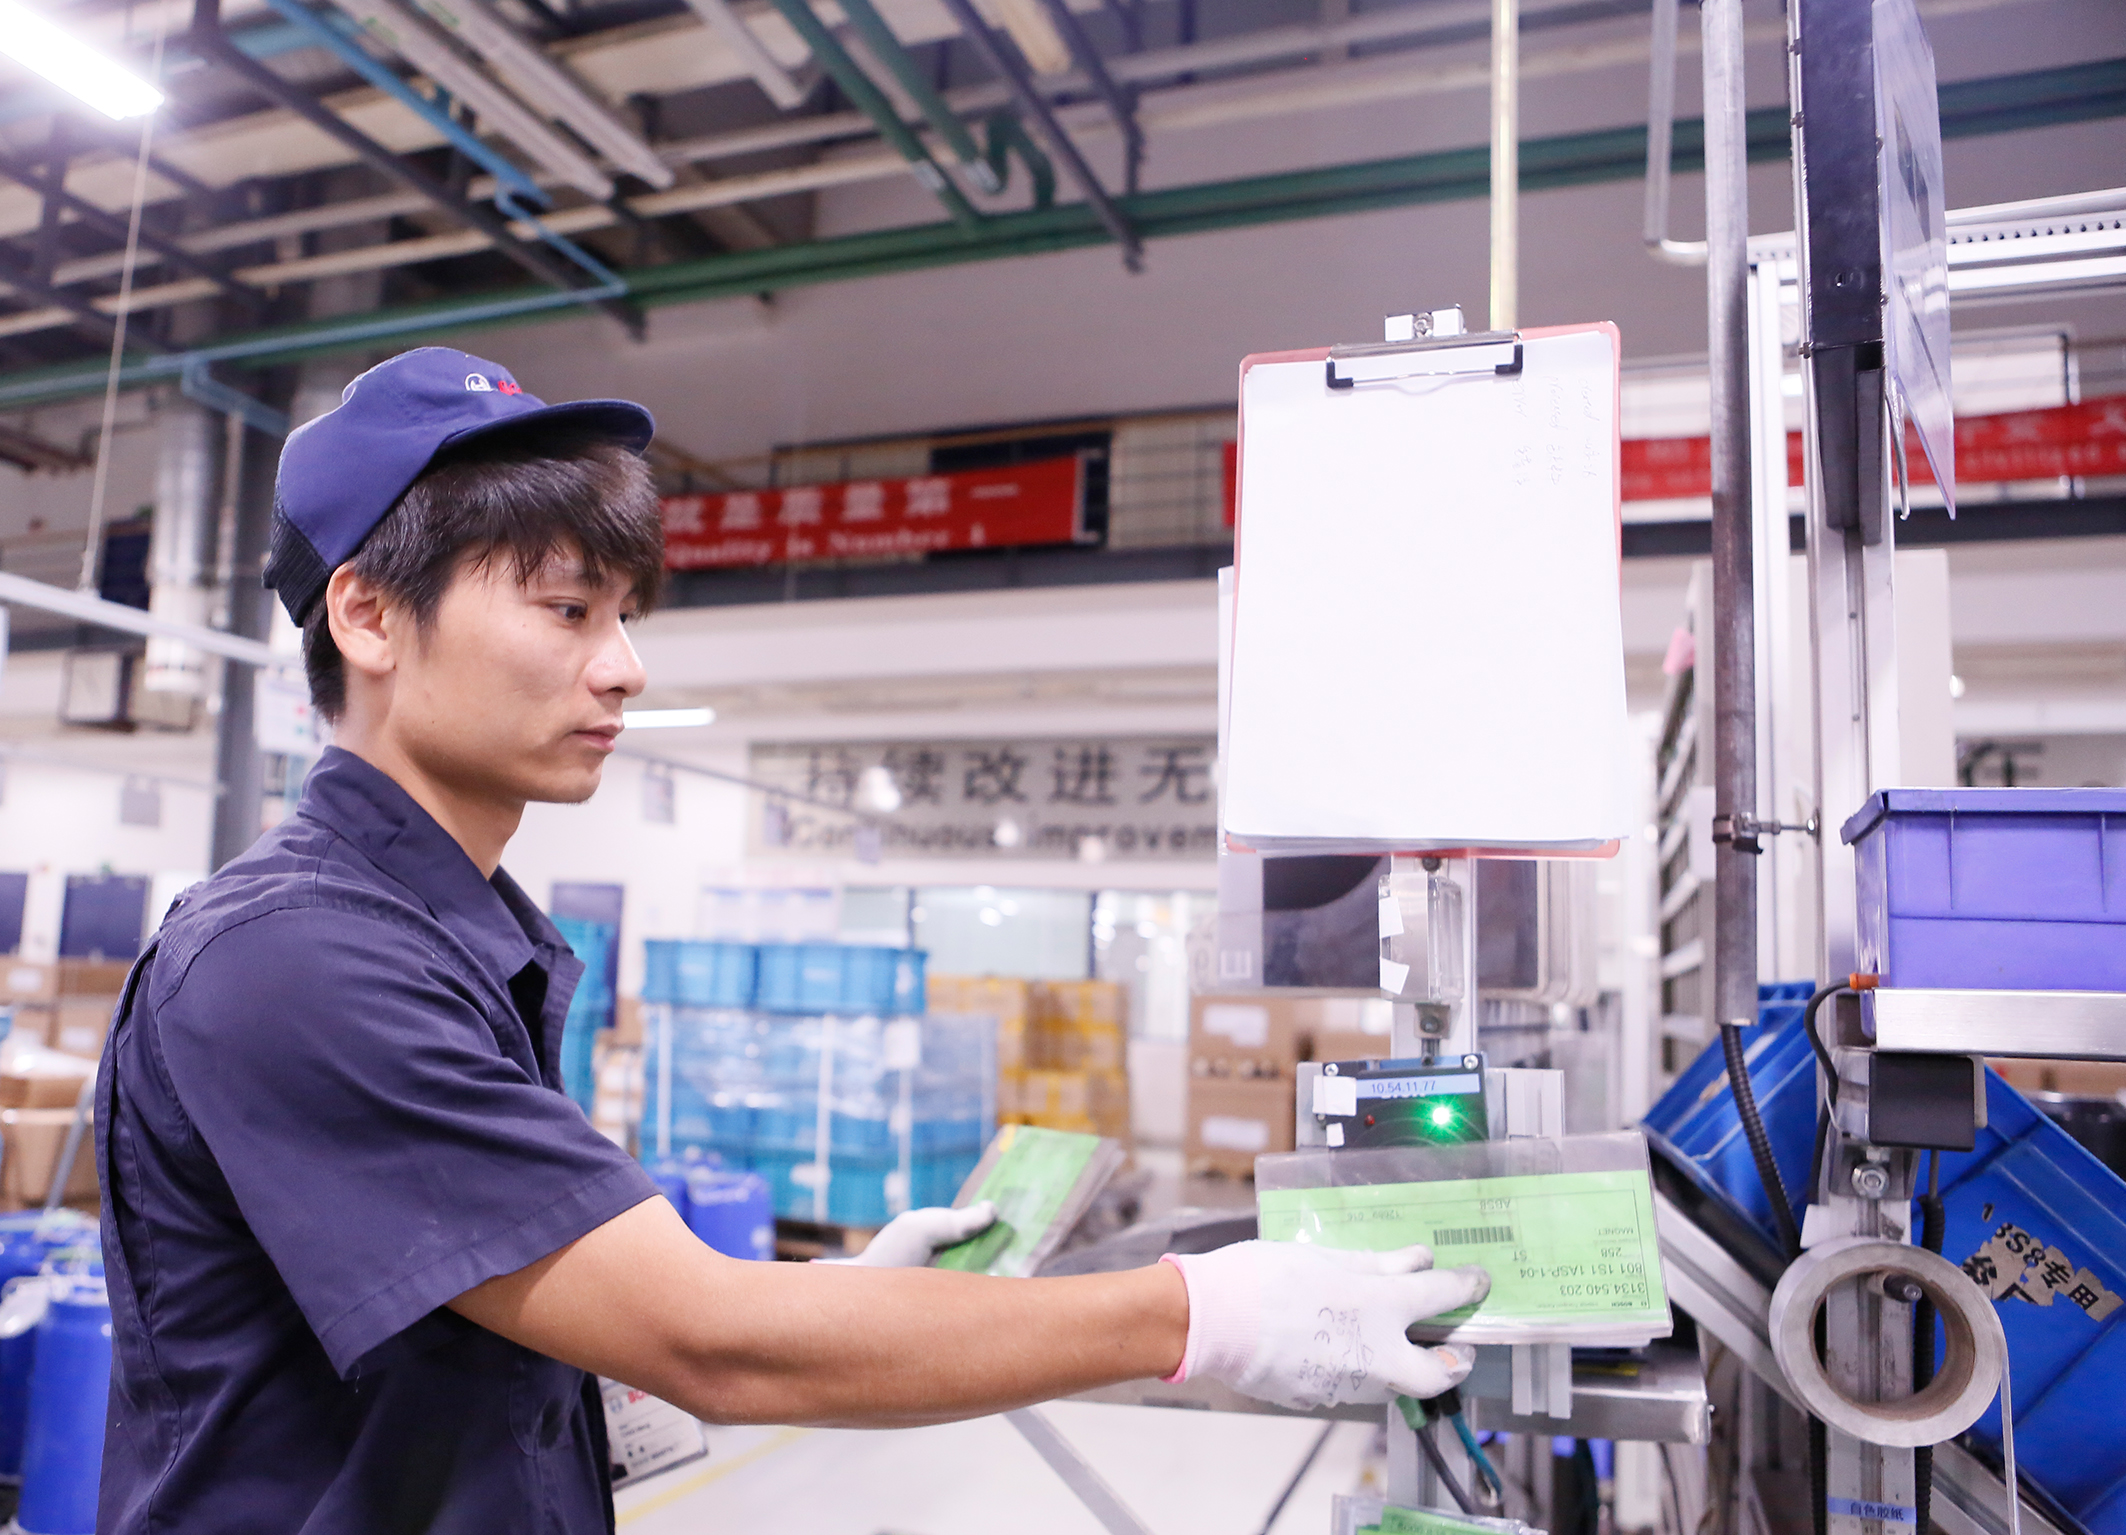 Bosch focuses on Industry 4.0 in China